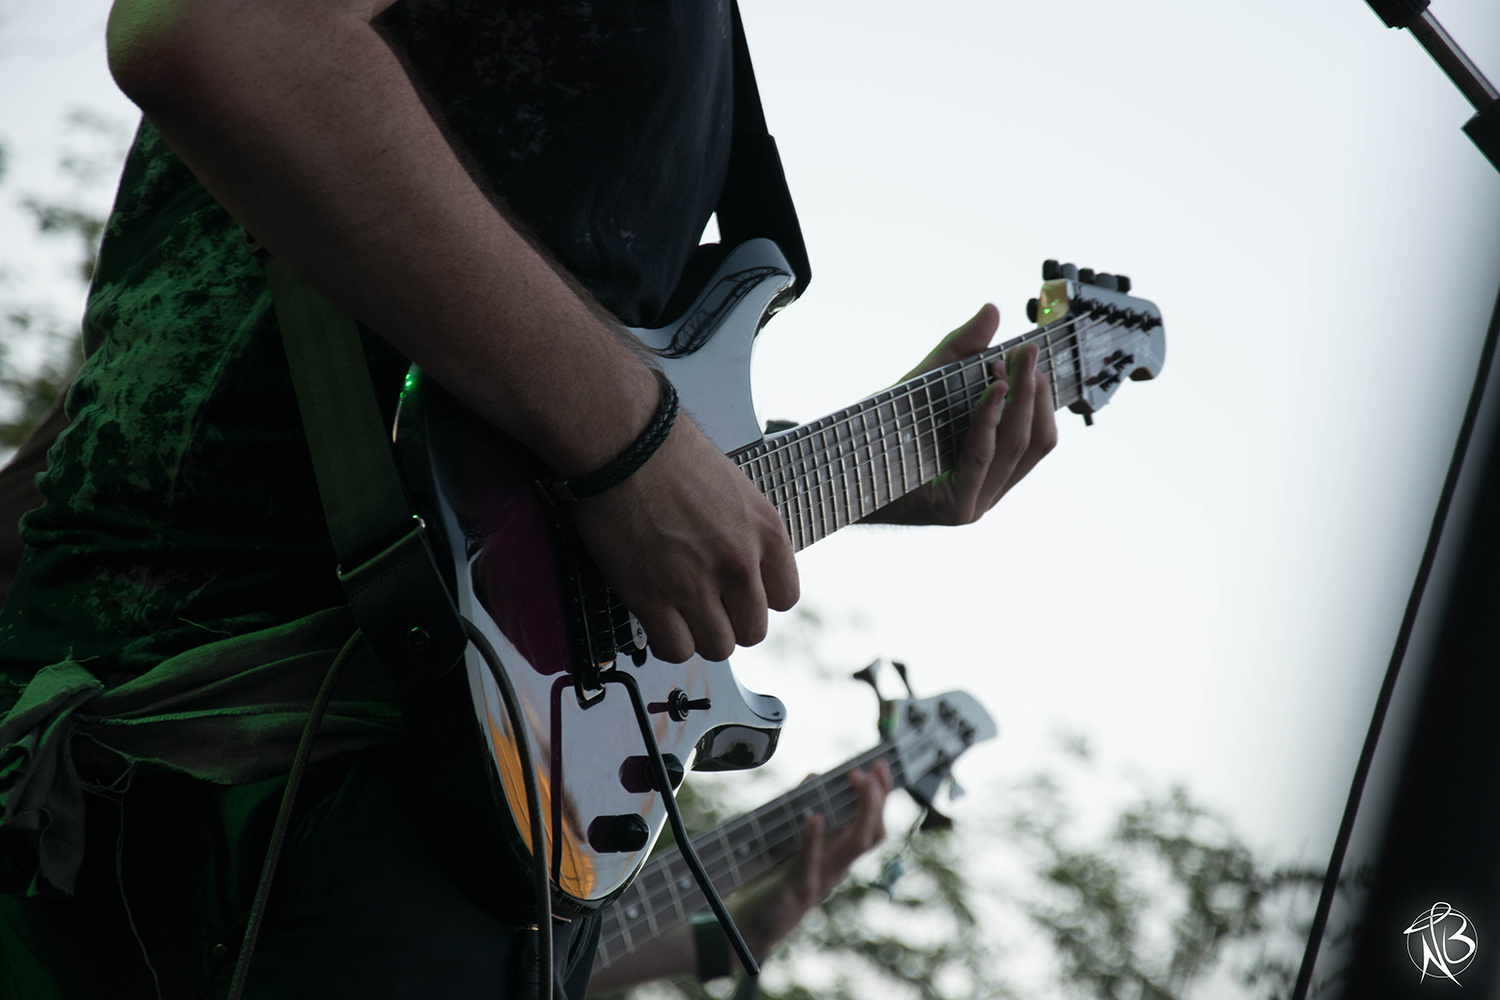 12 Guitar close-up.jpg